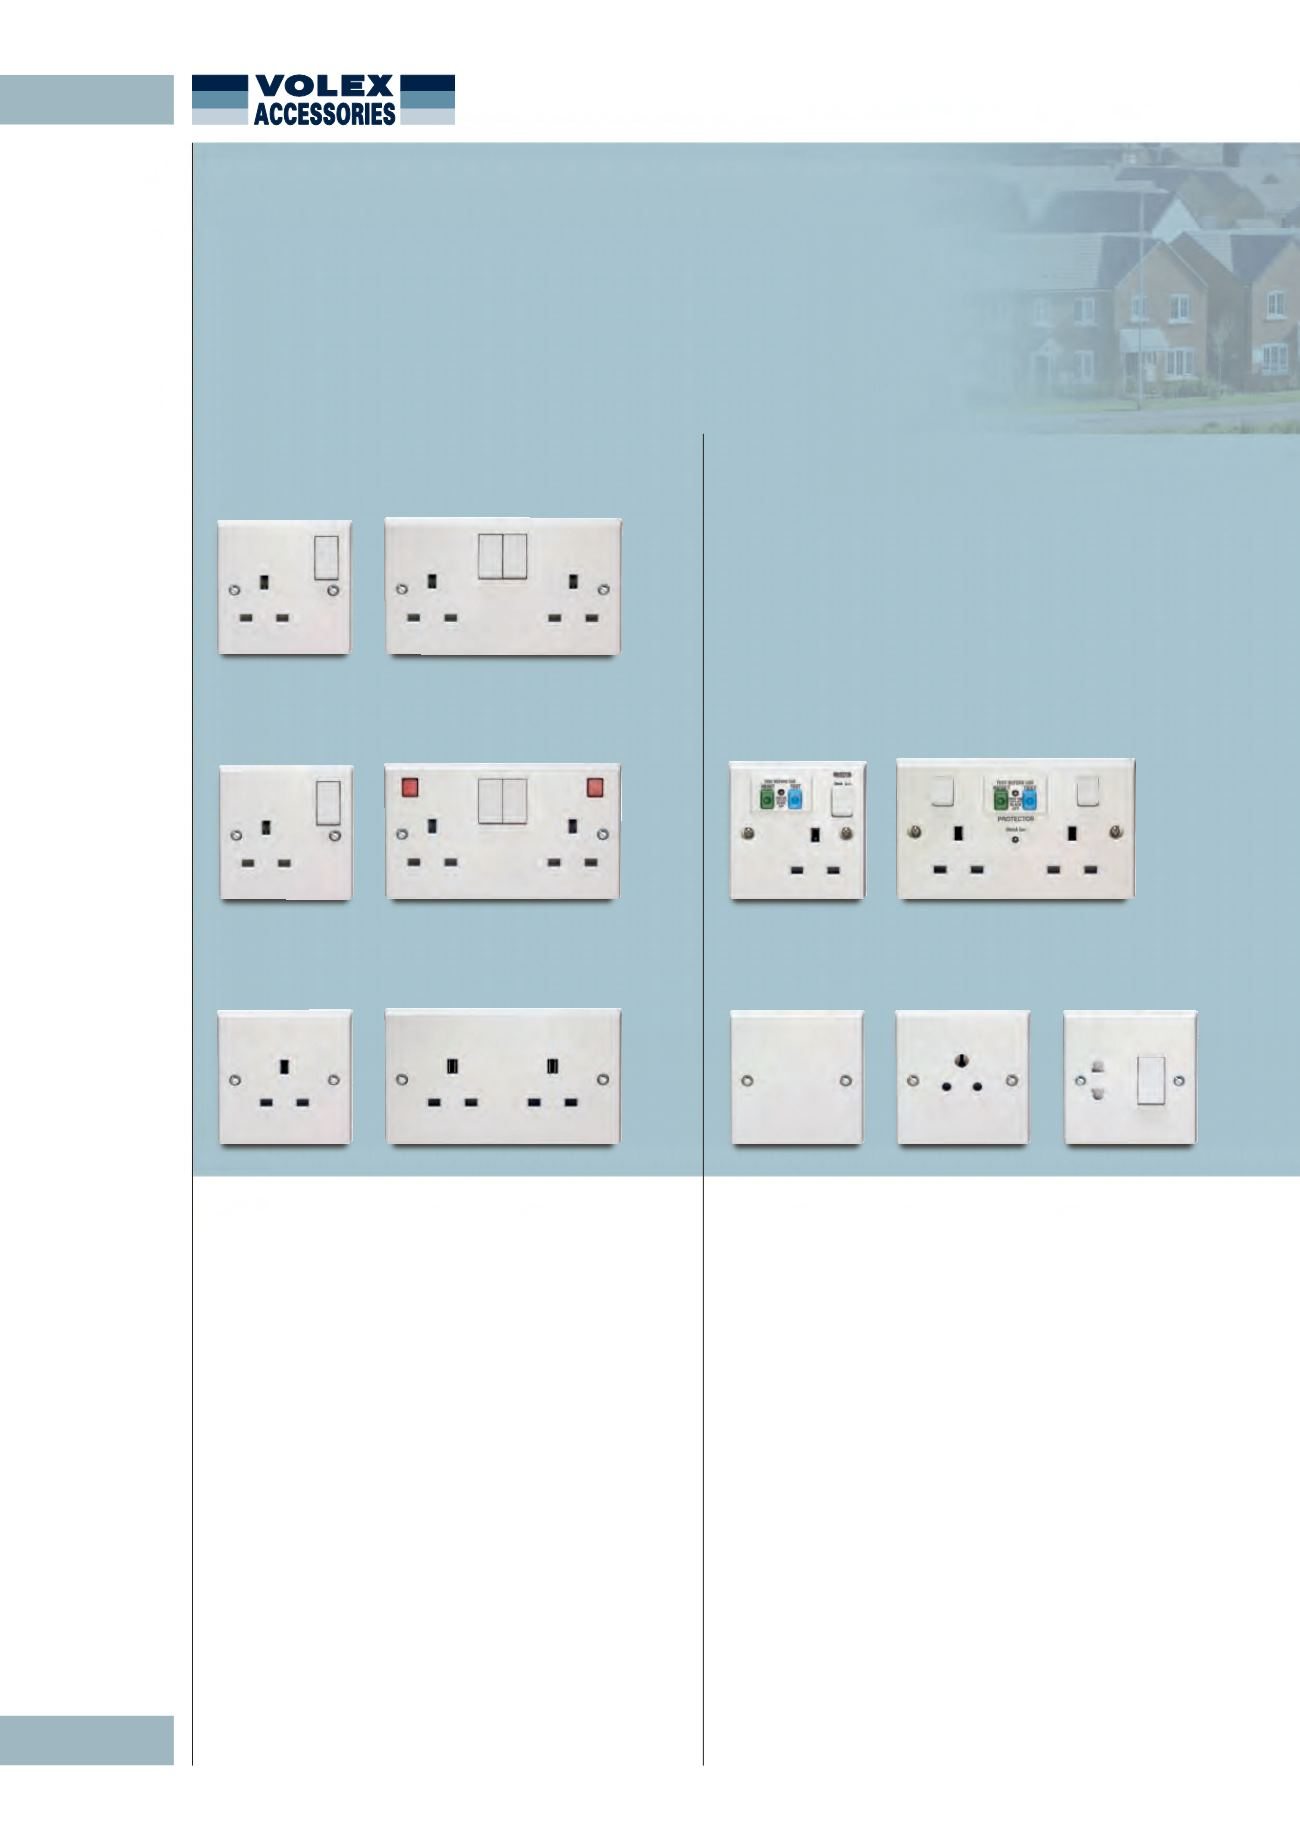 Volex wiring accessories selection guide page background asfbconference2016 Choice Image